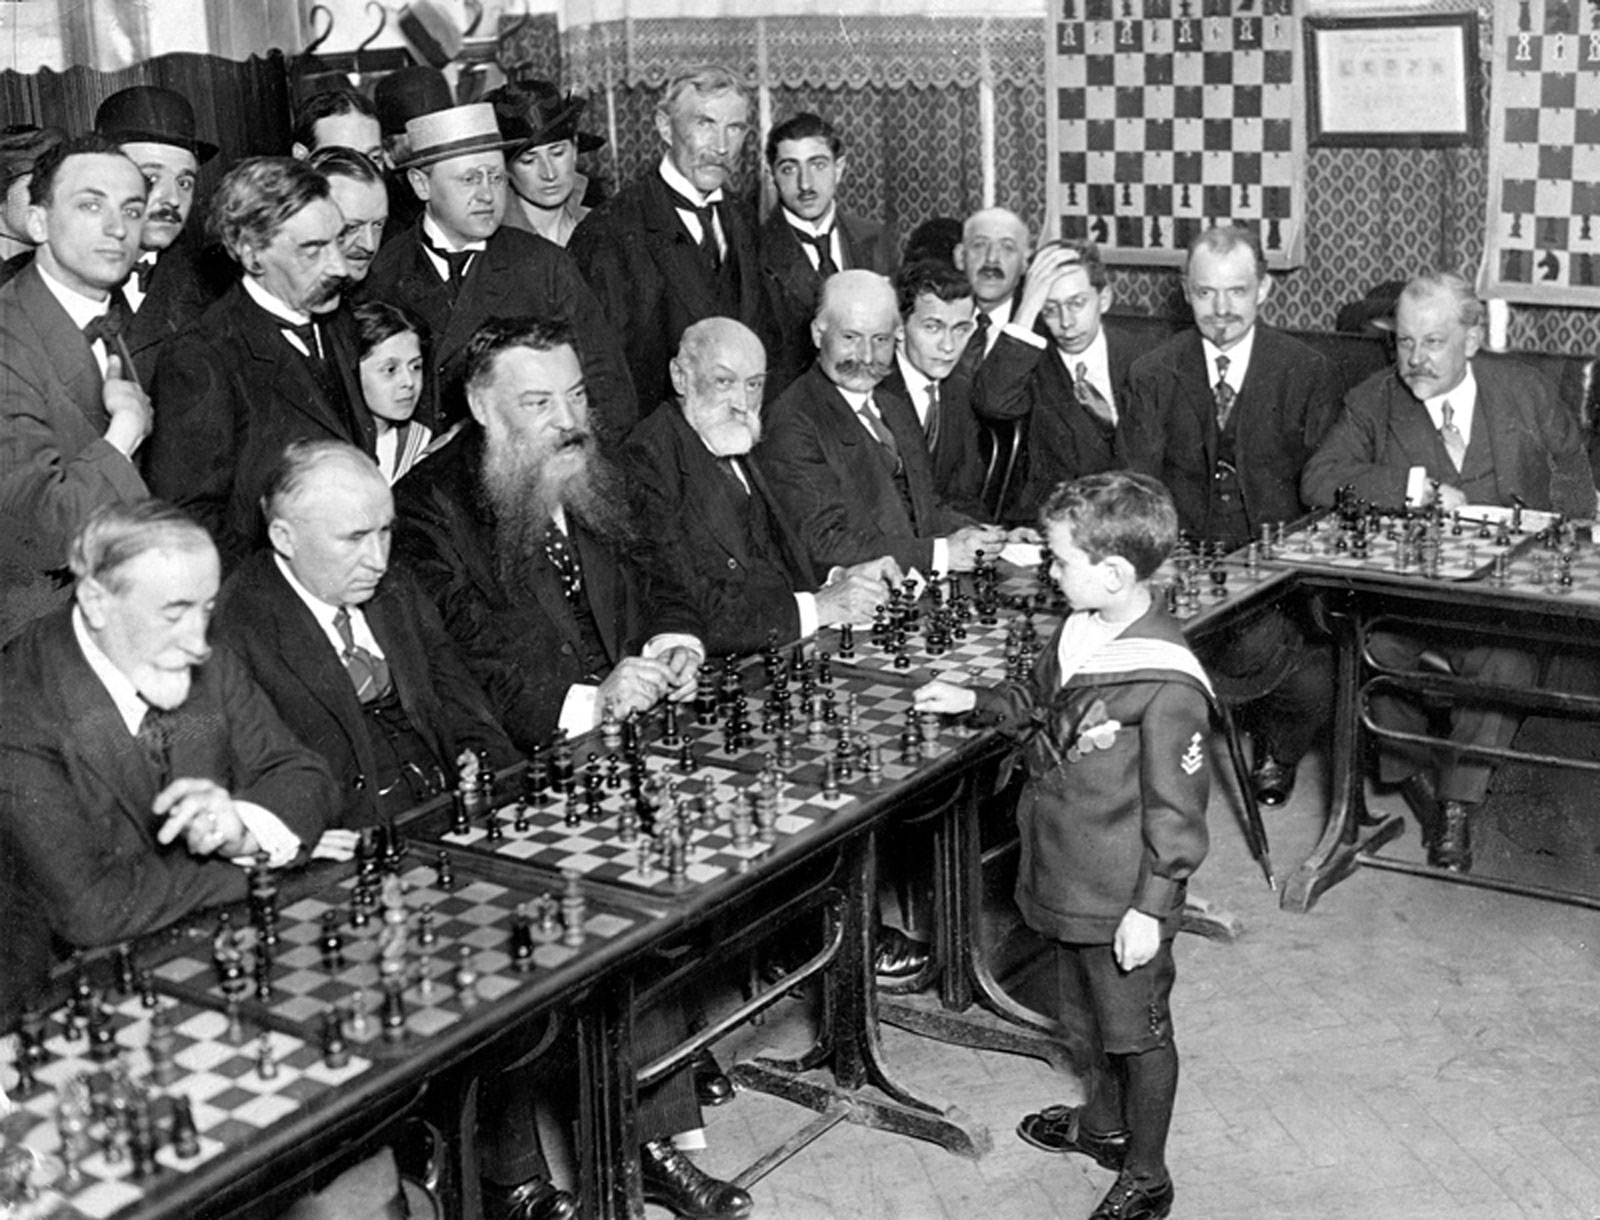 Samuel Reshevsky, age 8, defeating several chess masters at once.